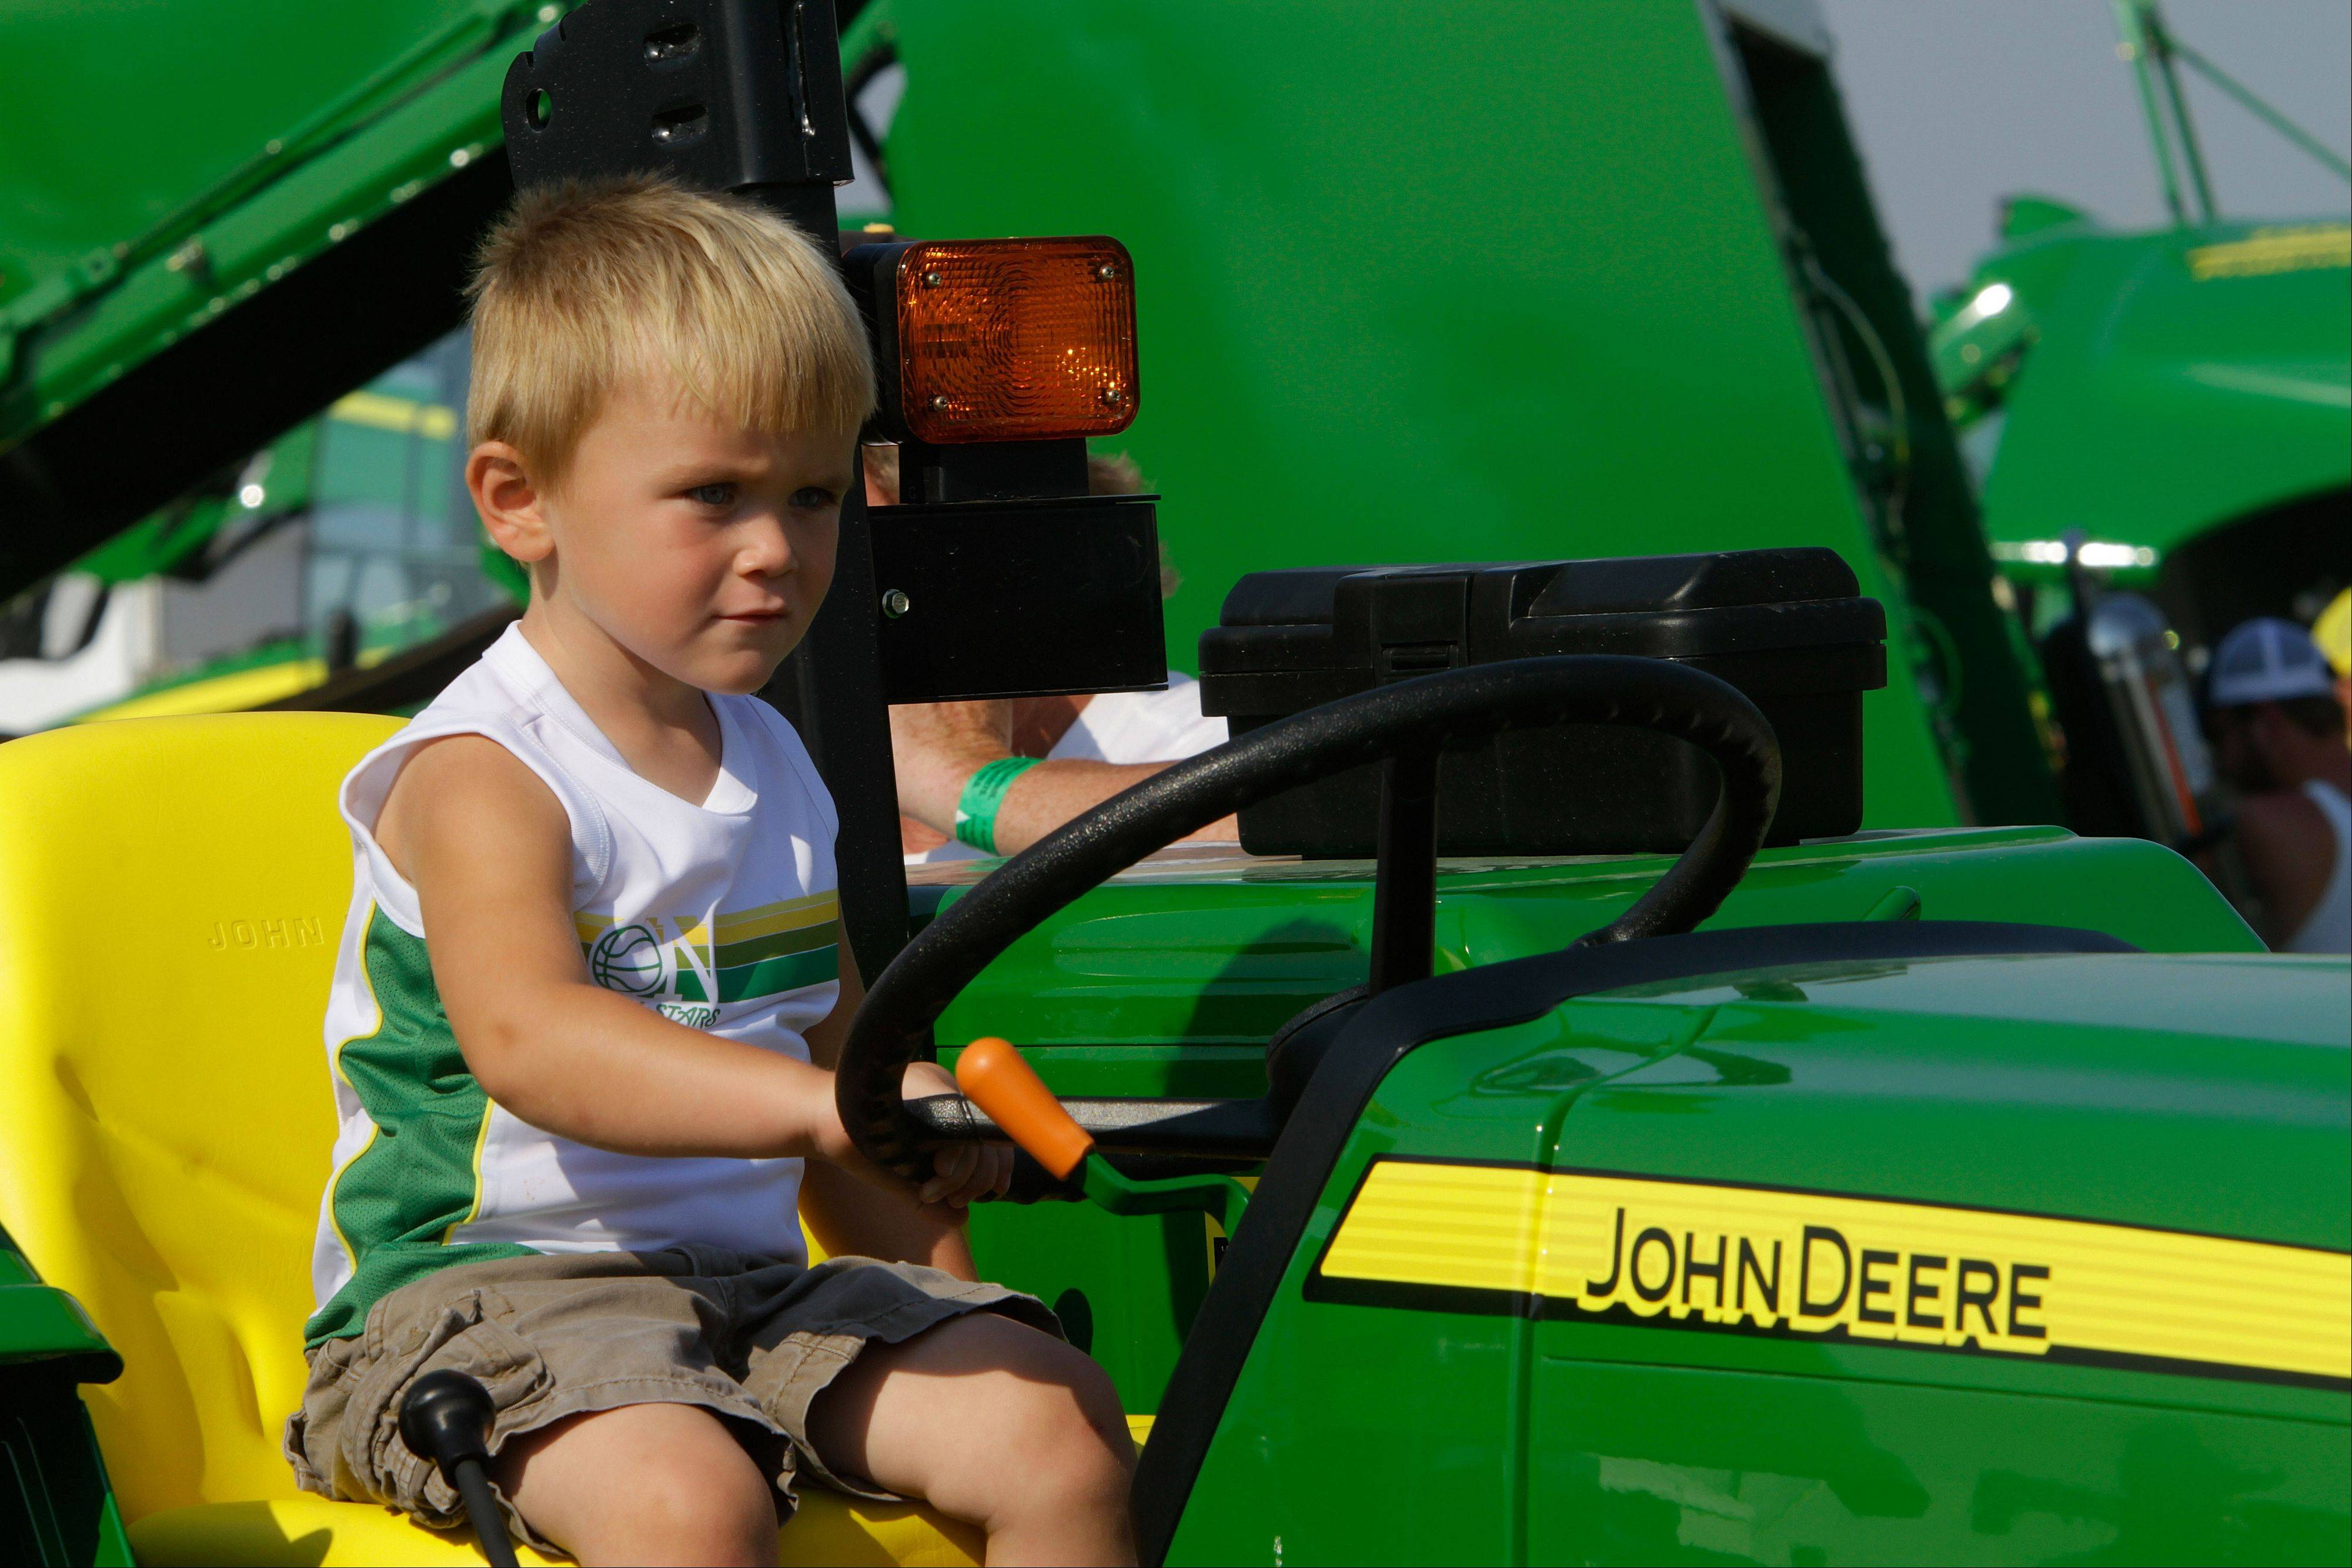 Eathan Beccue of Effingham, Ill., enjoys the John Deere tractor exhibits during the Farm Progress Show in Decatur.